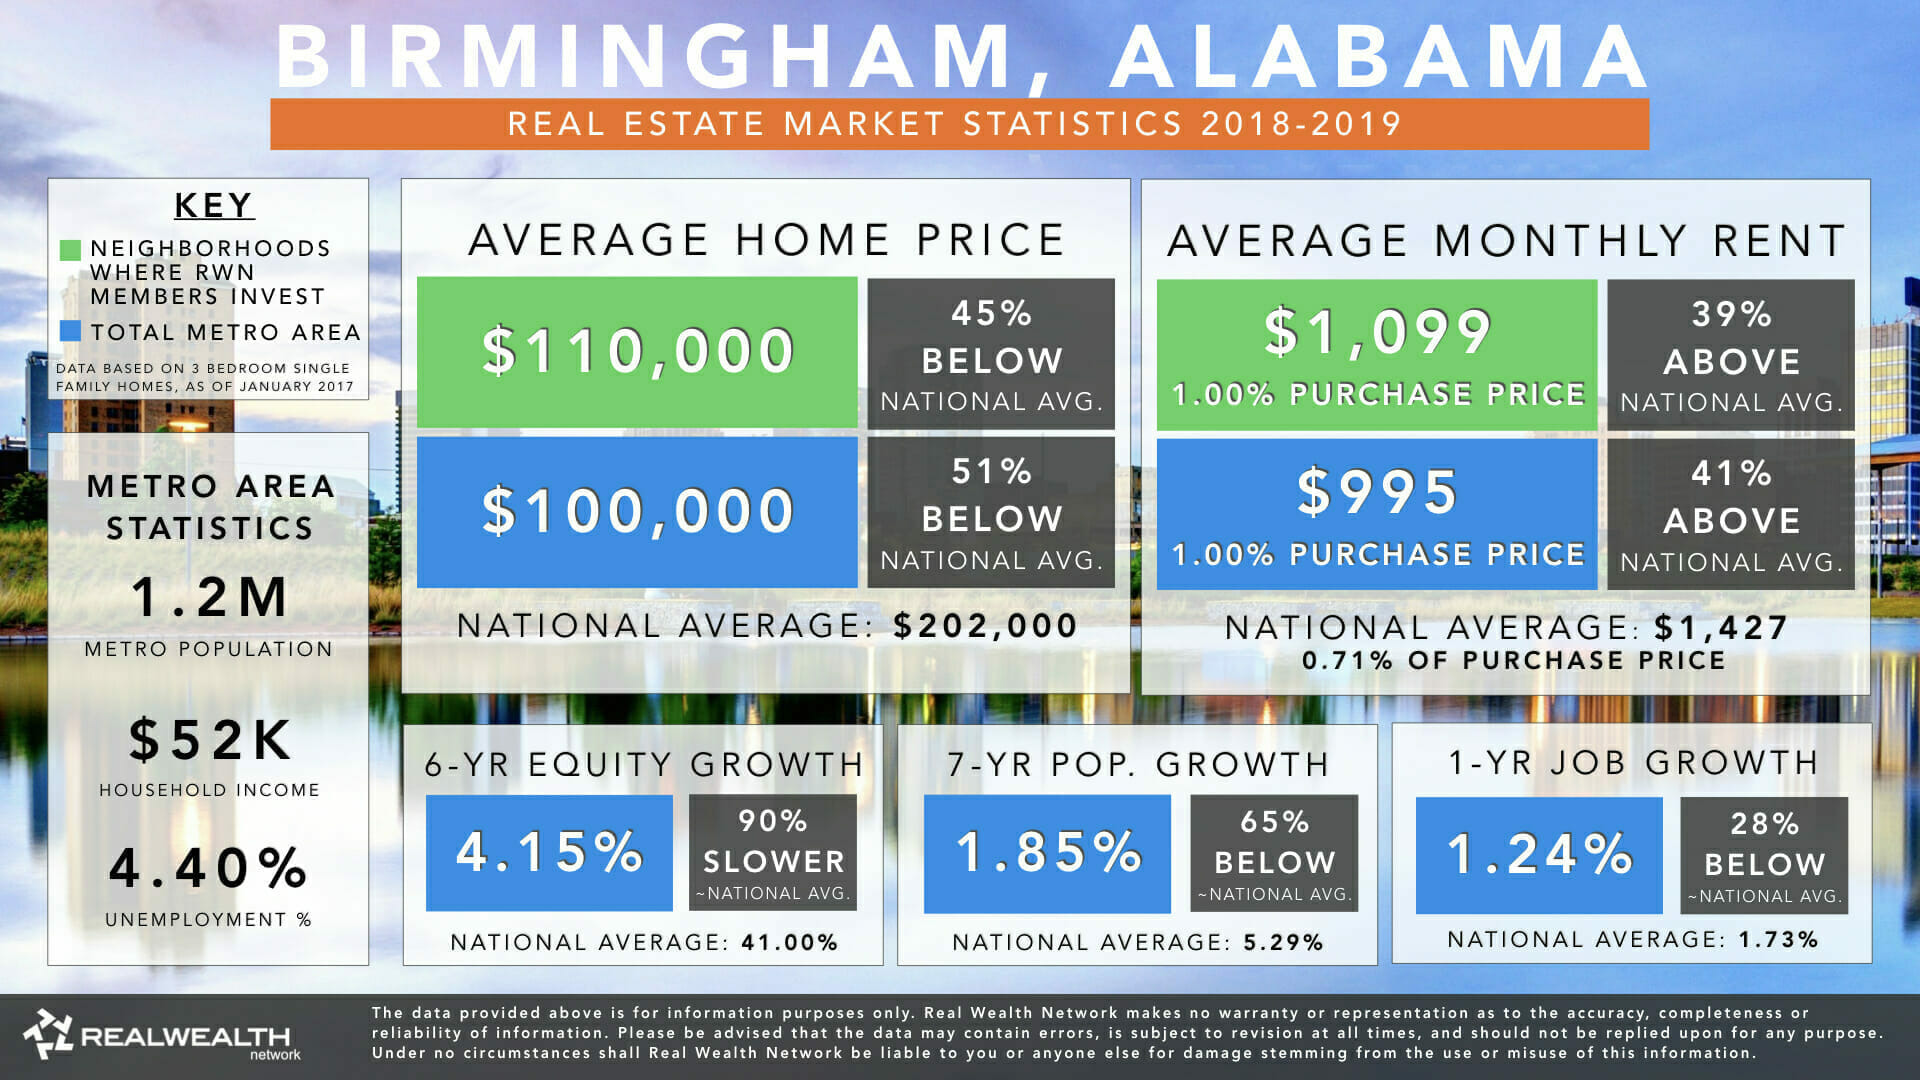 Birmingham Real Estate Markets Statistics 2018-2019